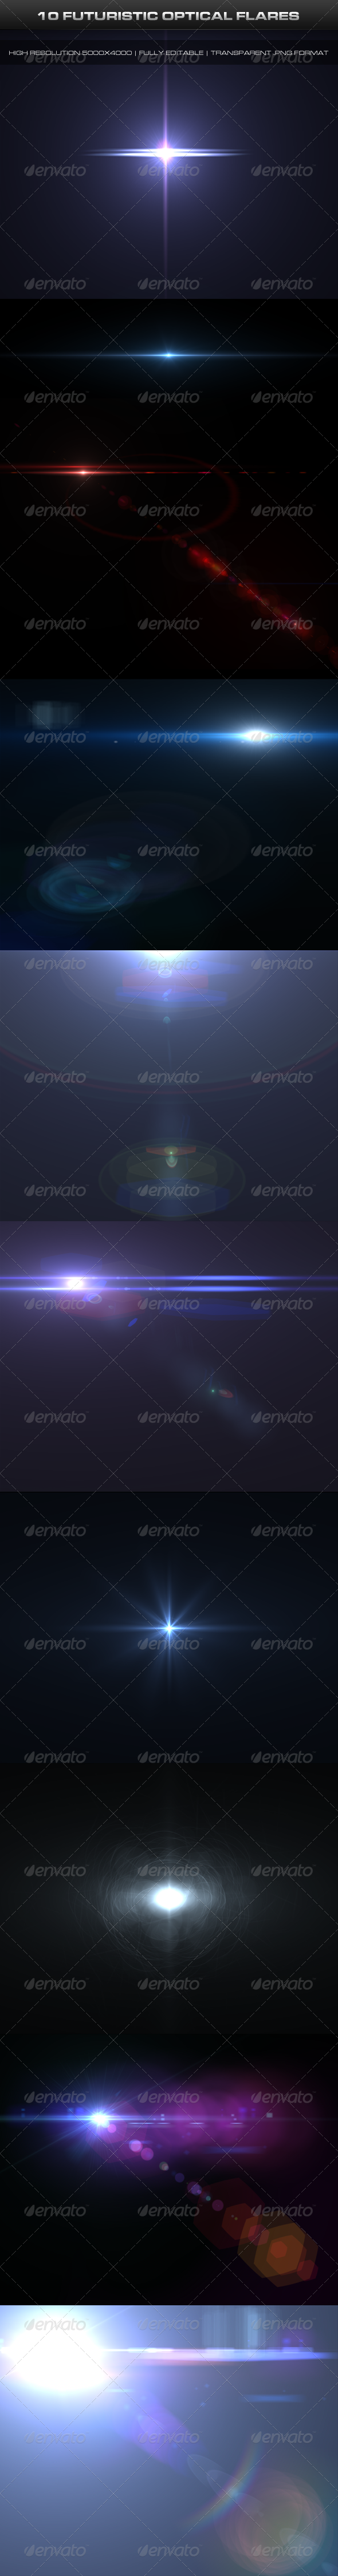 GraphicRiver 10 Futuristic Optical Flares 5130091